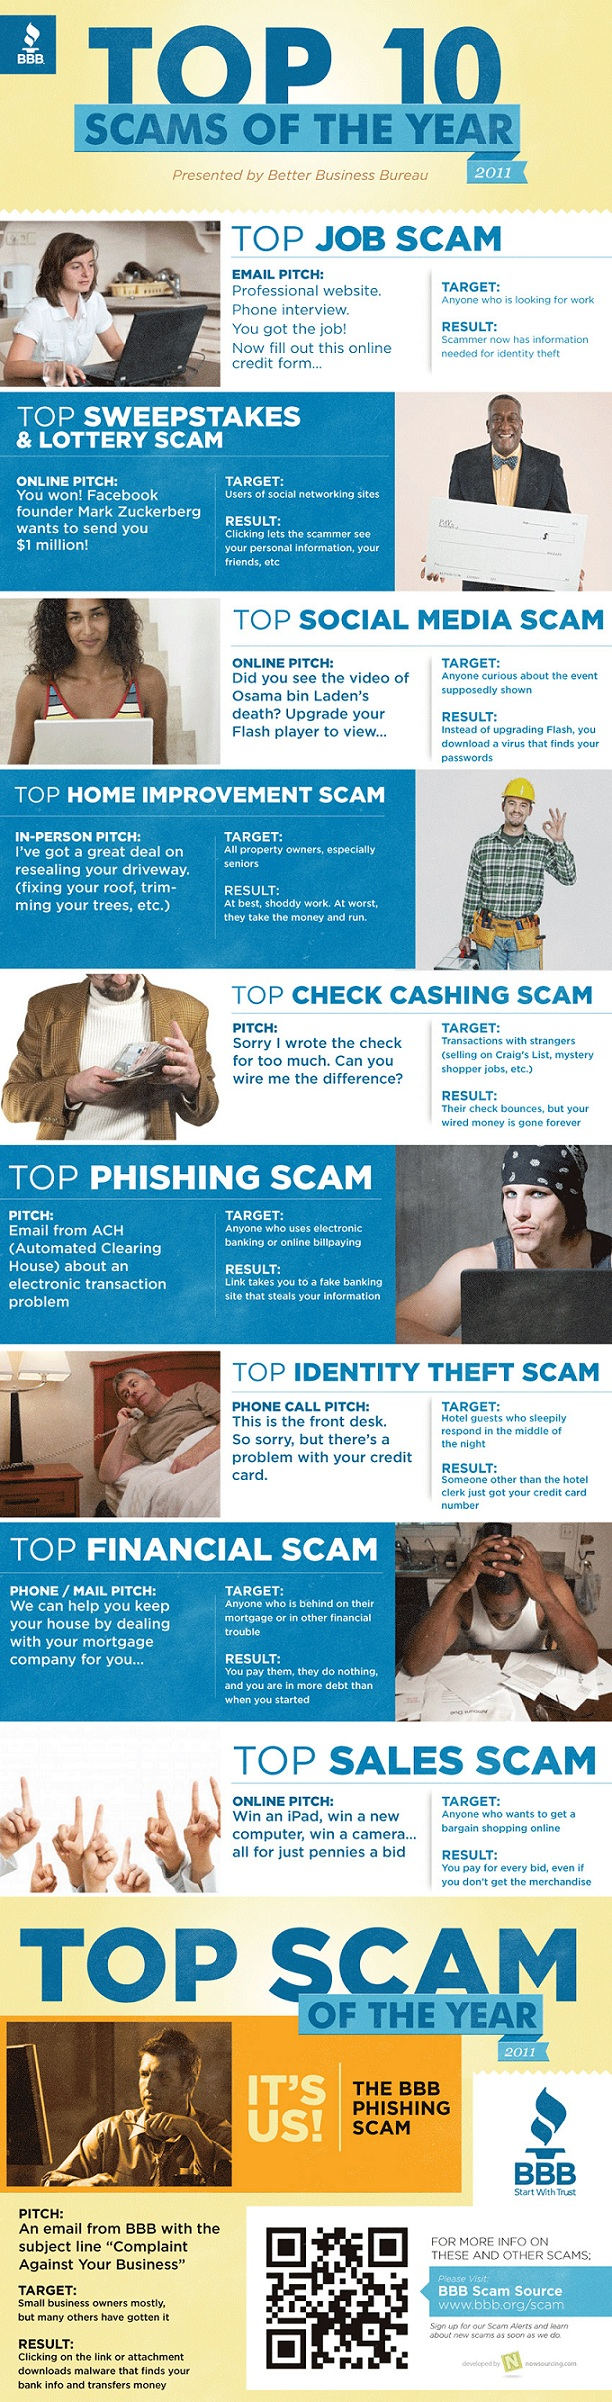 Top 10 Online Scams For The Past Year [INFOGRAPHIC]